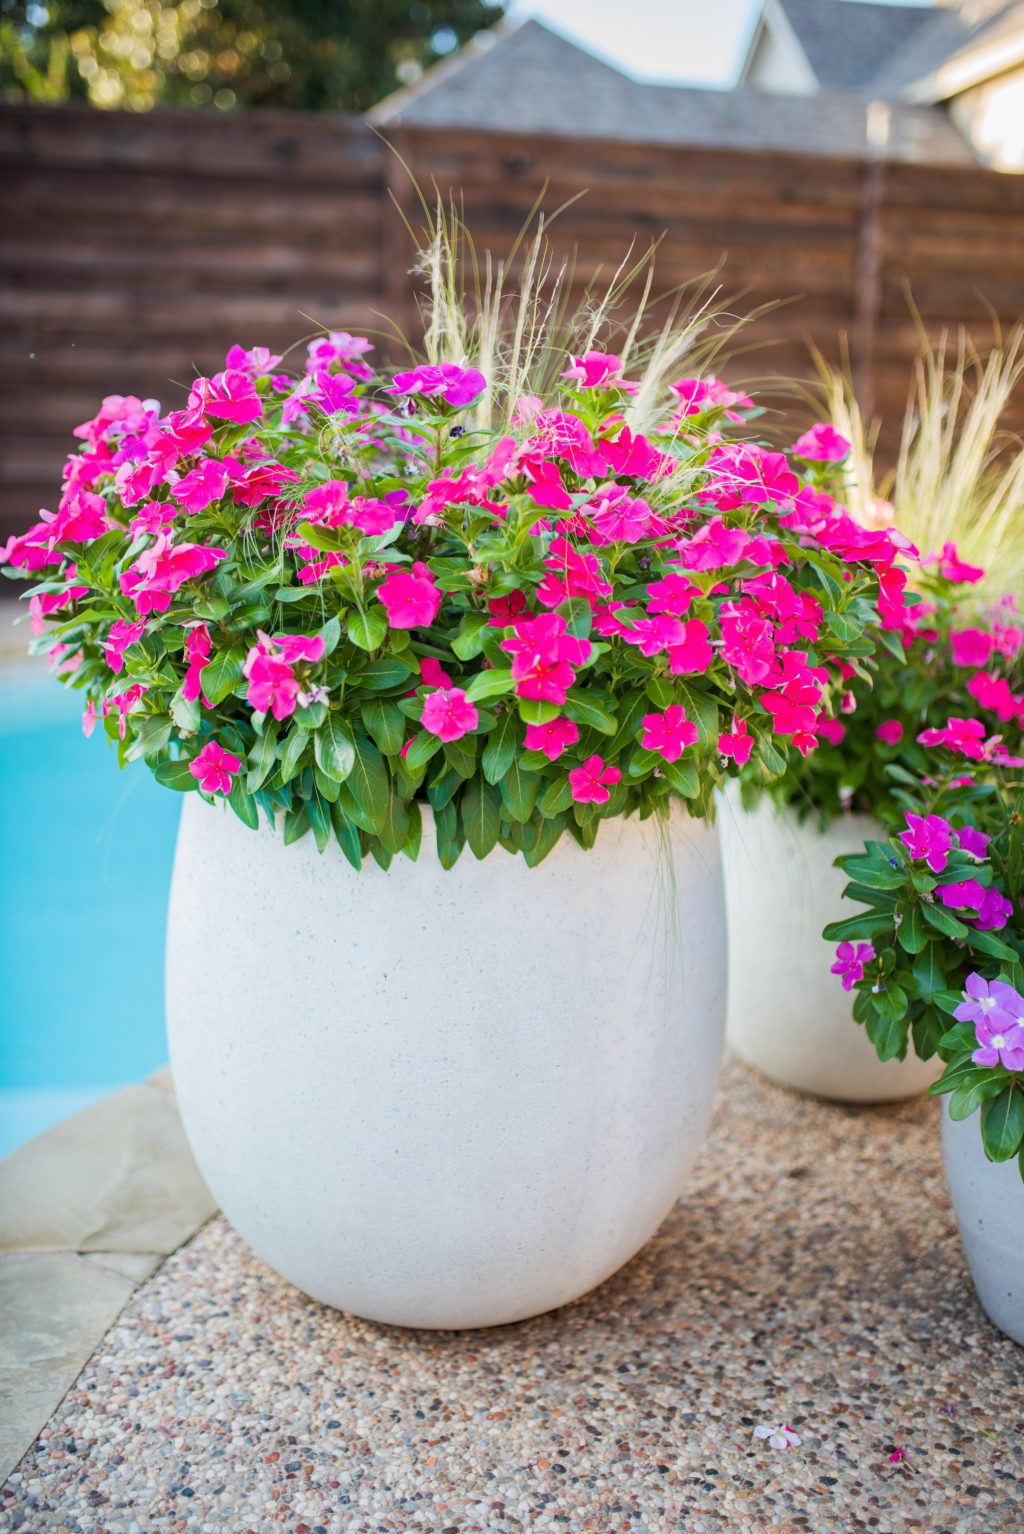 impatiens in concrete planters by texas pool in summer